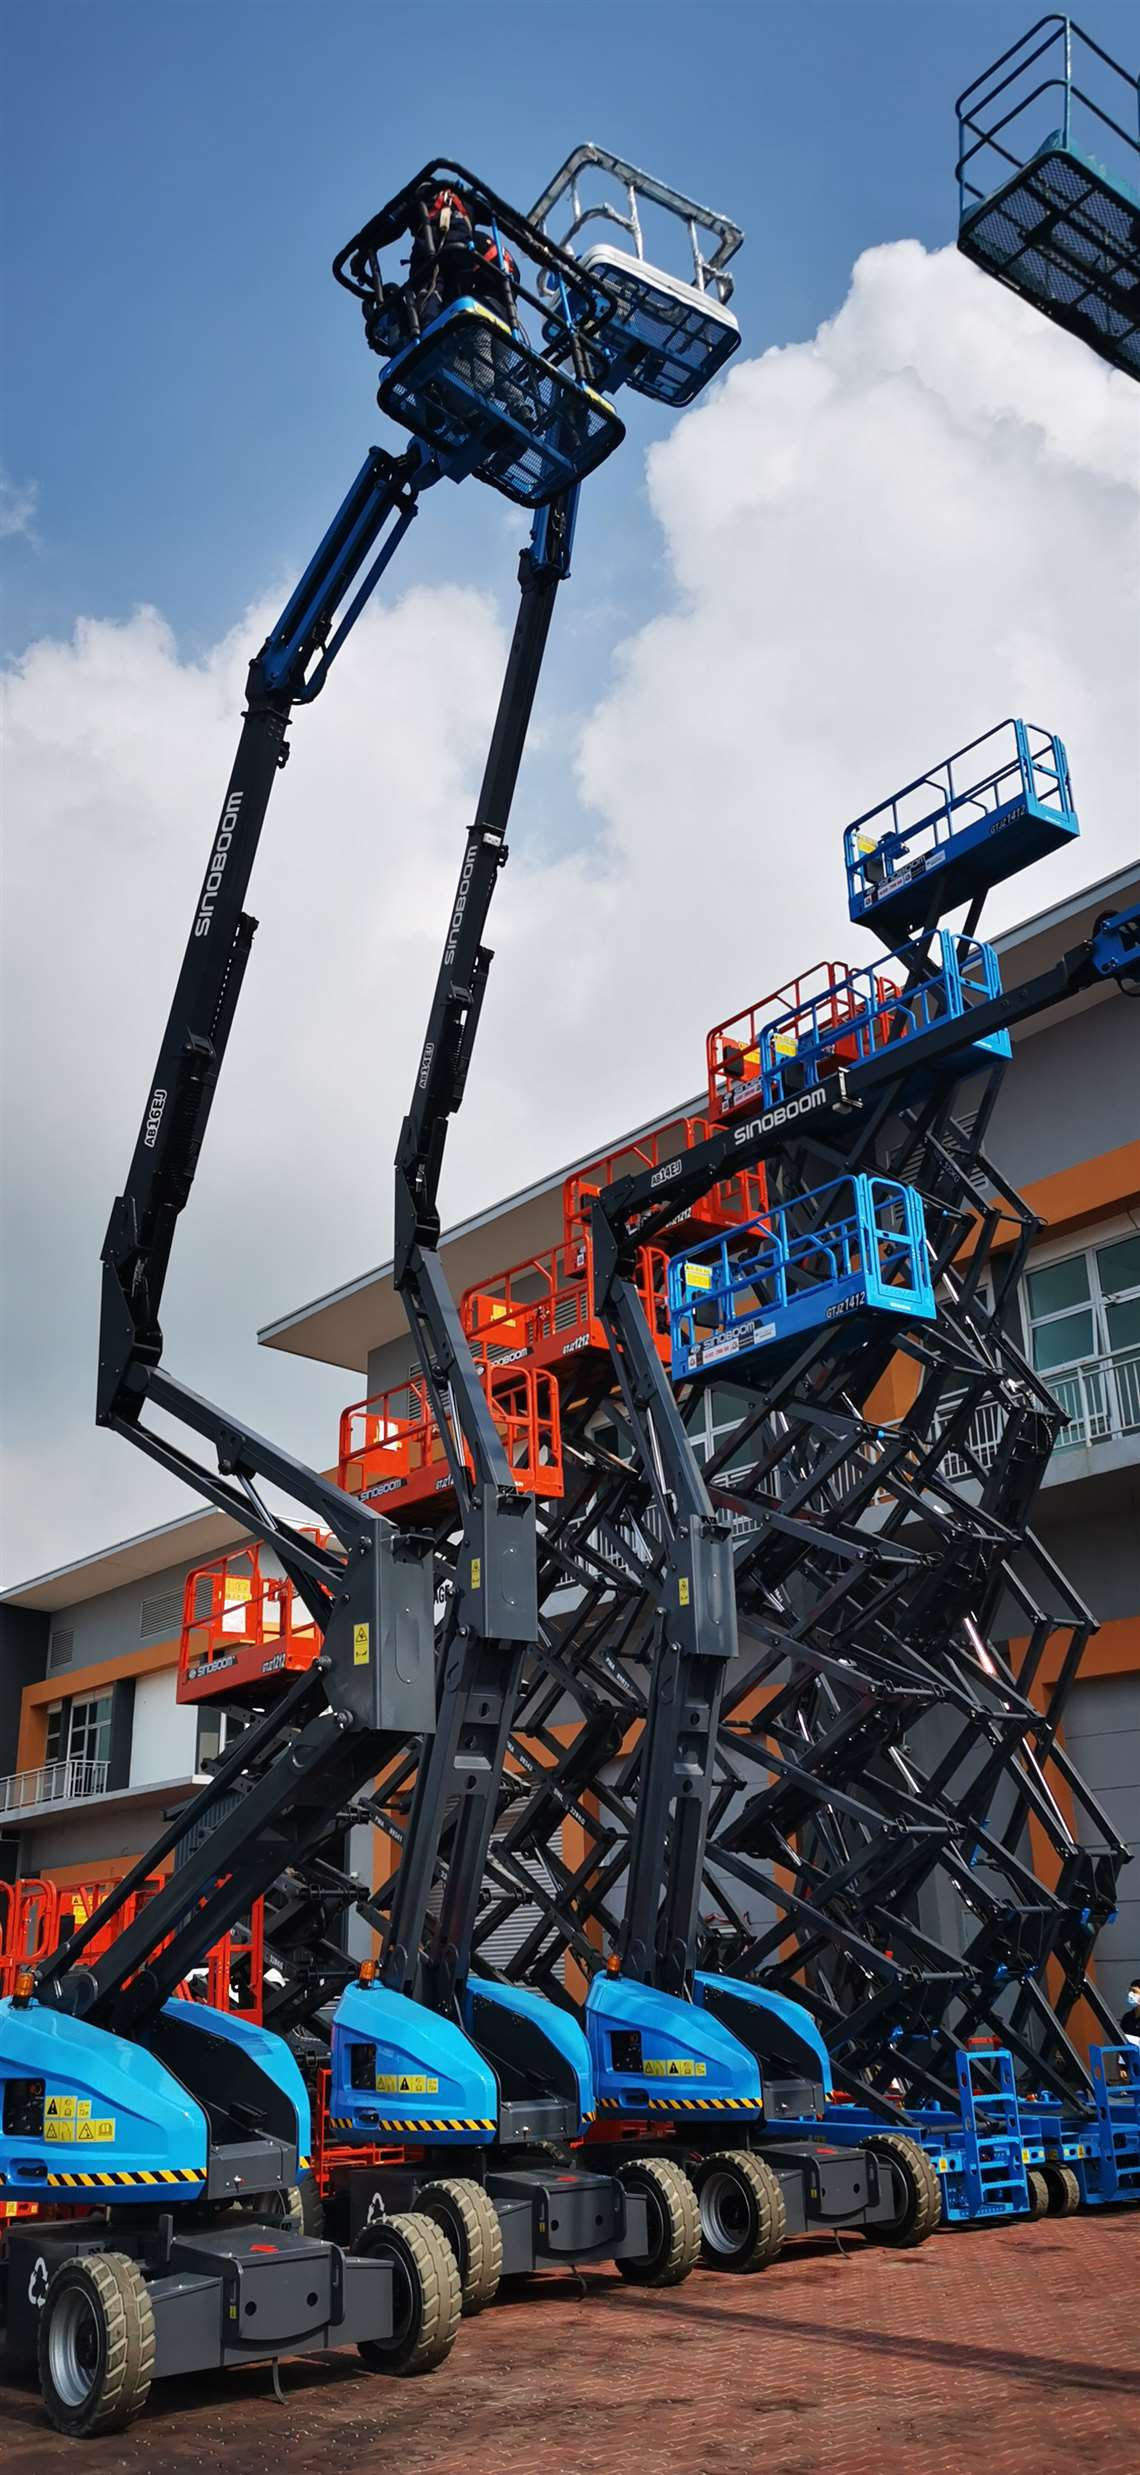 Schmetterling Rental's new Sinoboom platforms